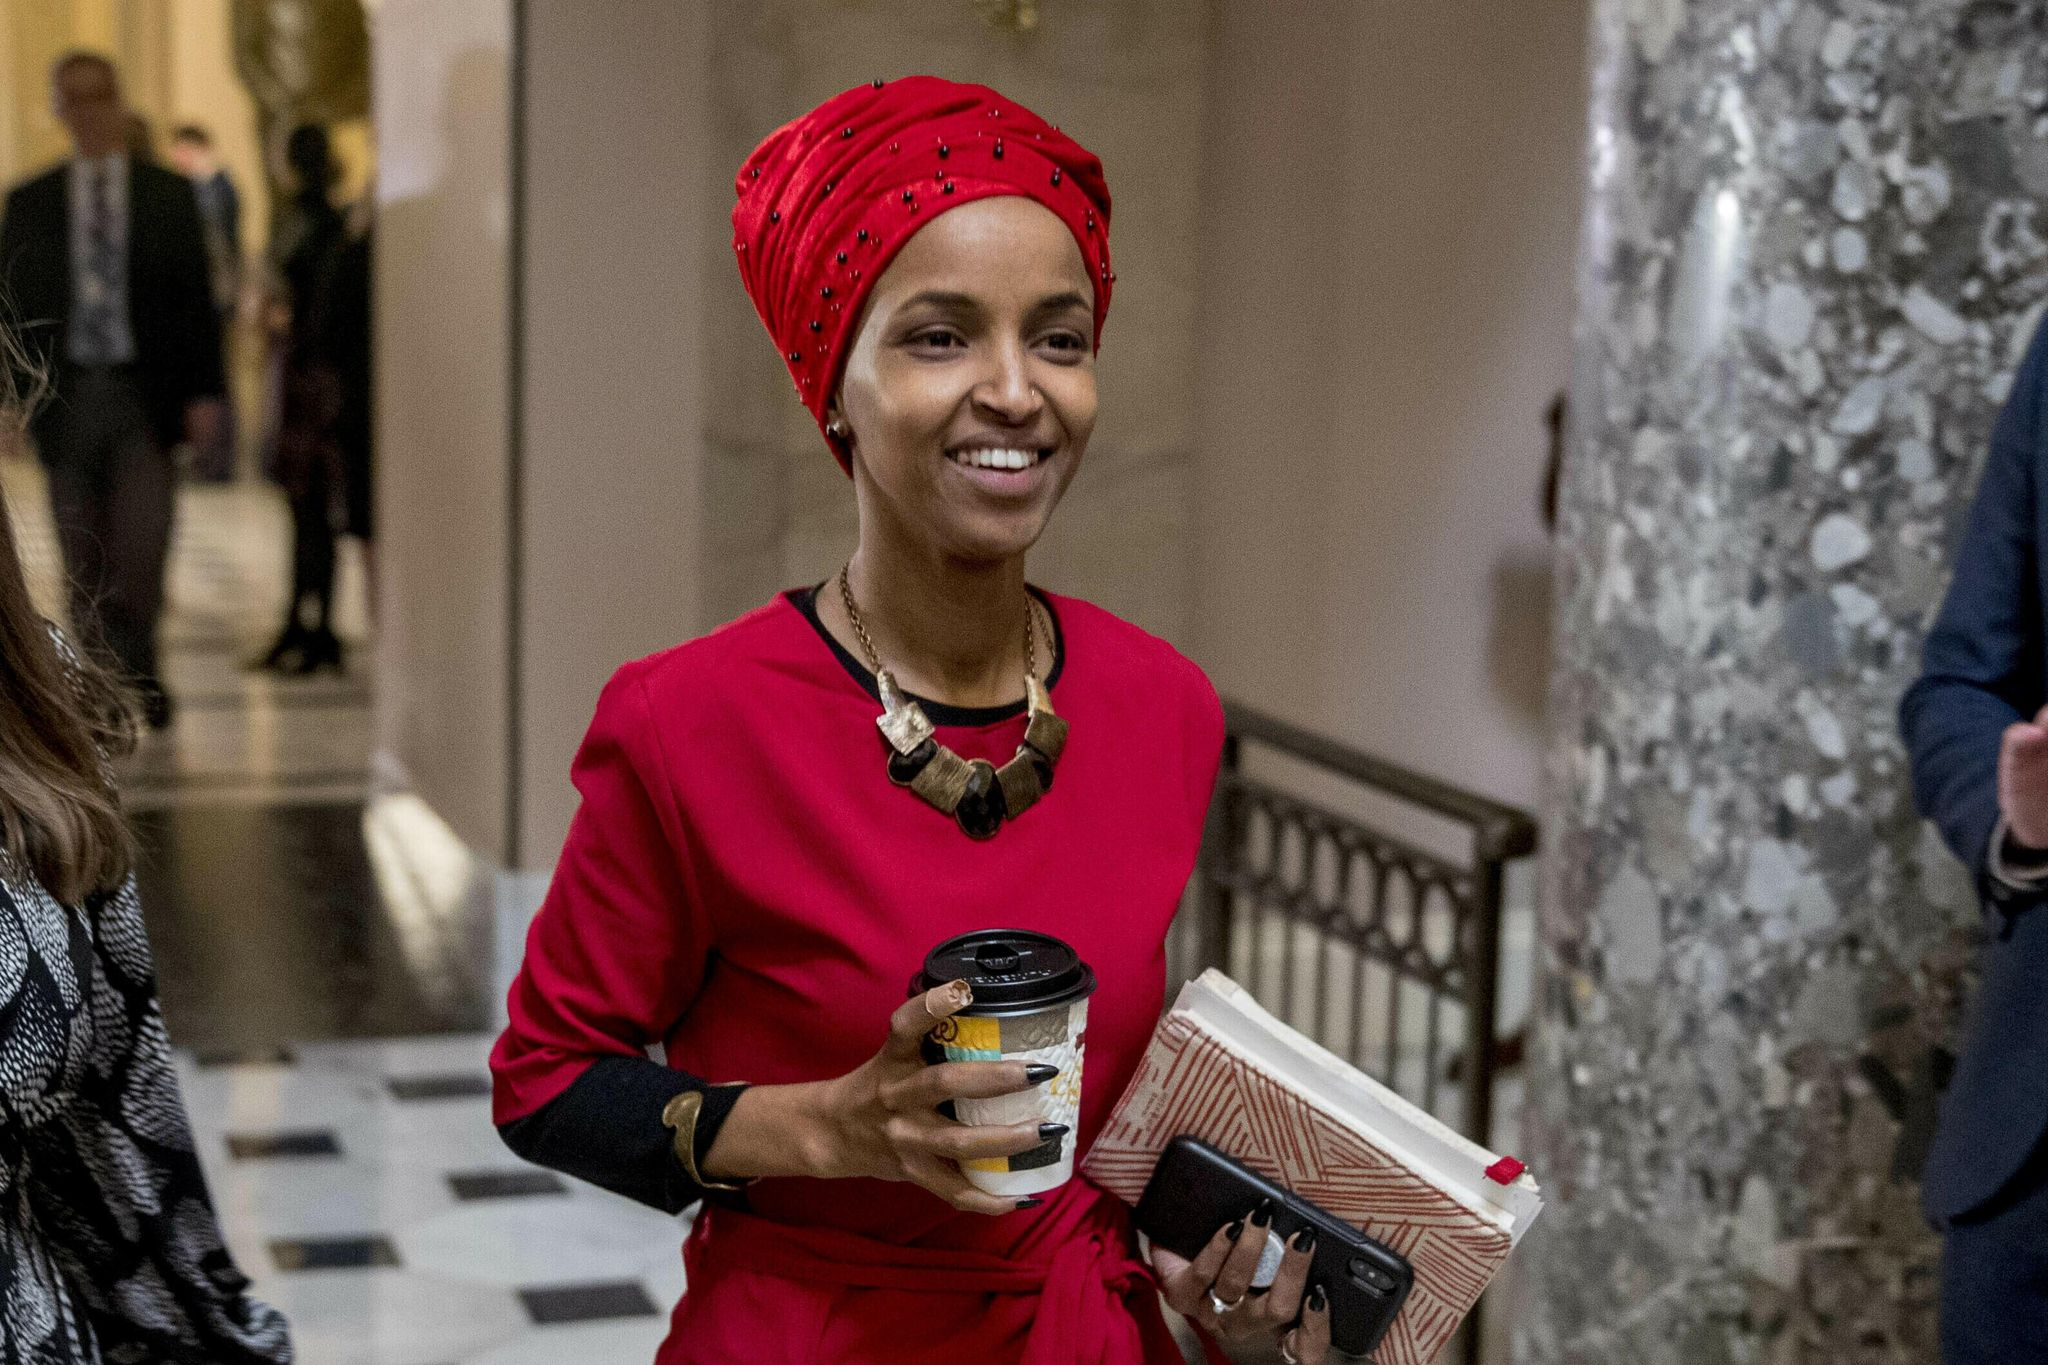 Sen. James Lankford: Rep. Ilhan Omar's apology was 'entirely appropriate'